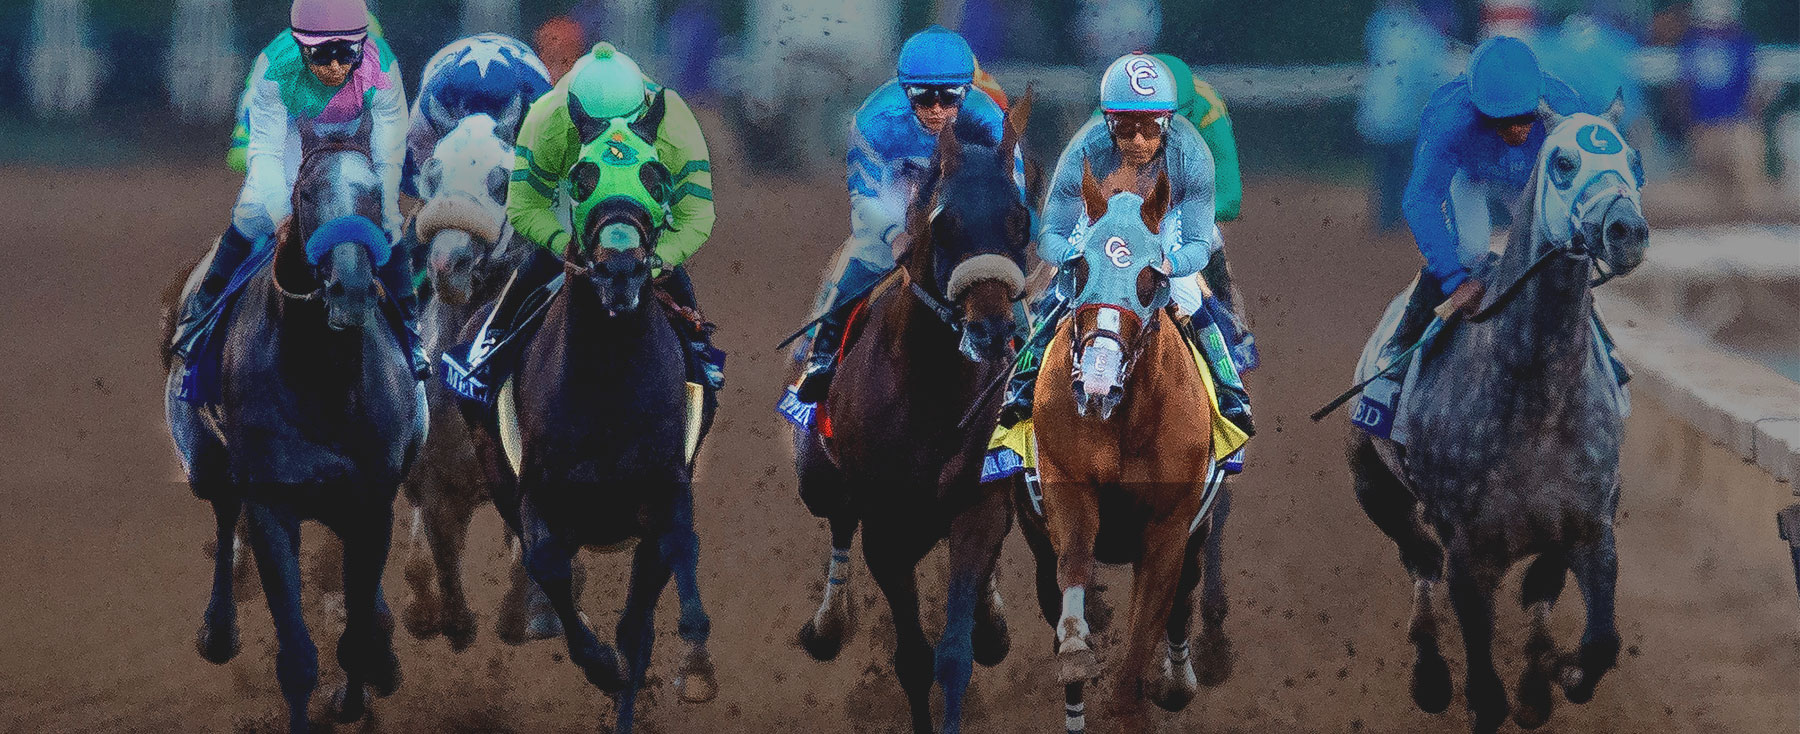 2017 Breeders' Cup World Championships